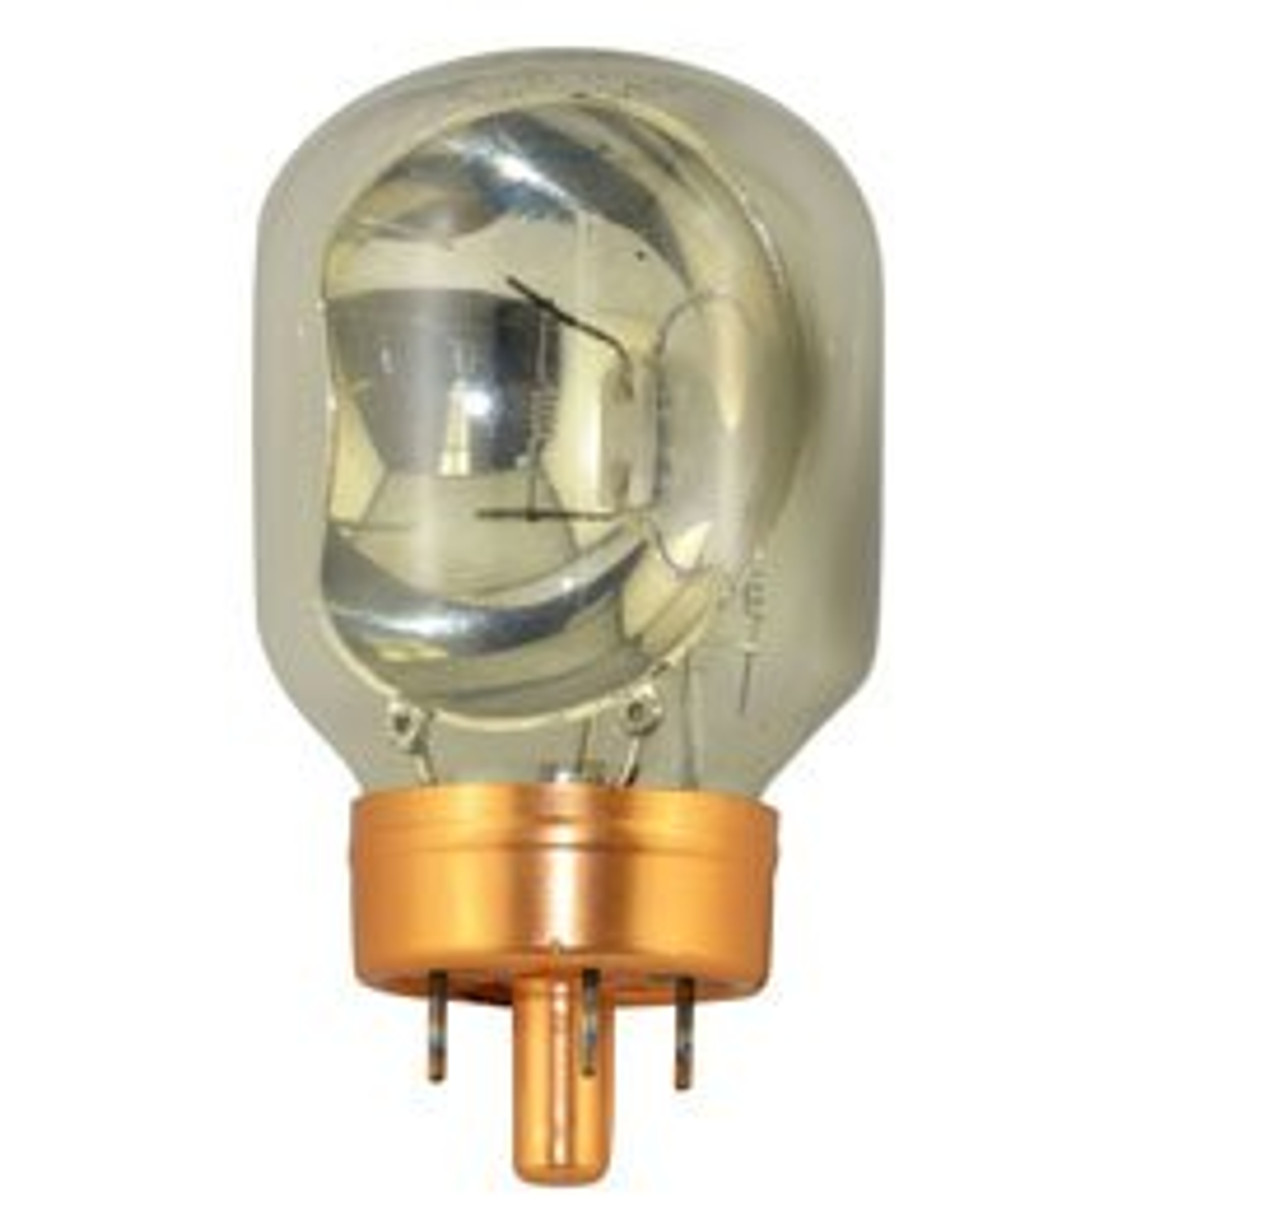 Ansco (see GAF) - Ansco Memo Master 8mm Projector - 8mm Movie Projector - Replacement Bulb Model- DFG, DFA